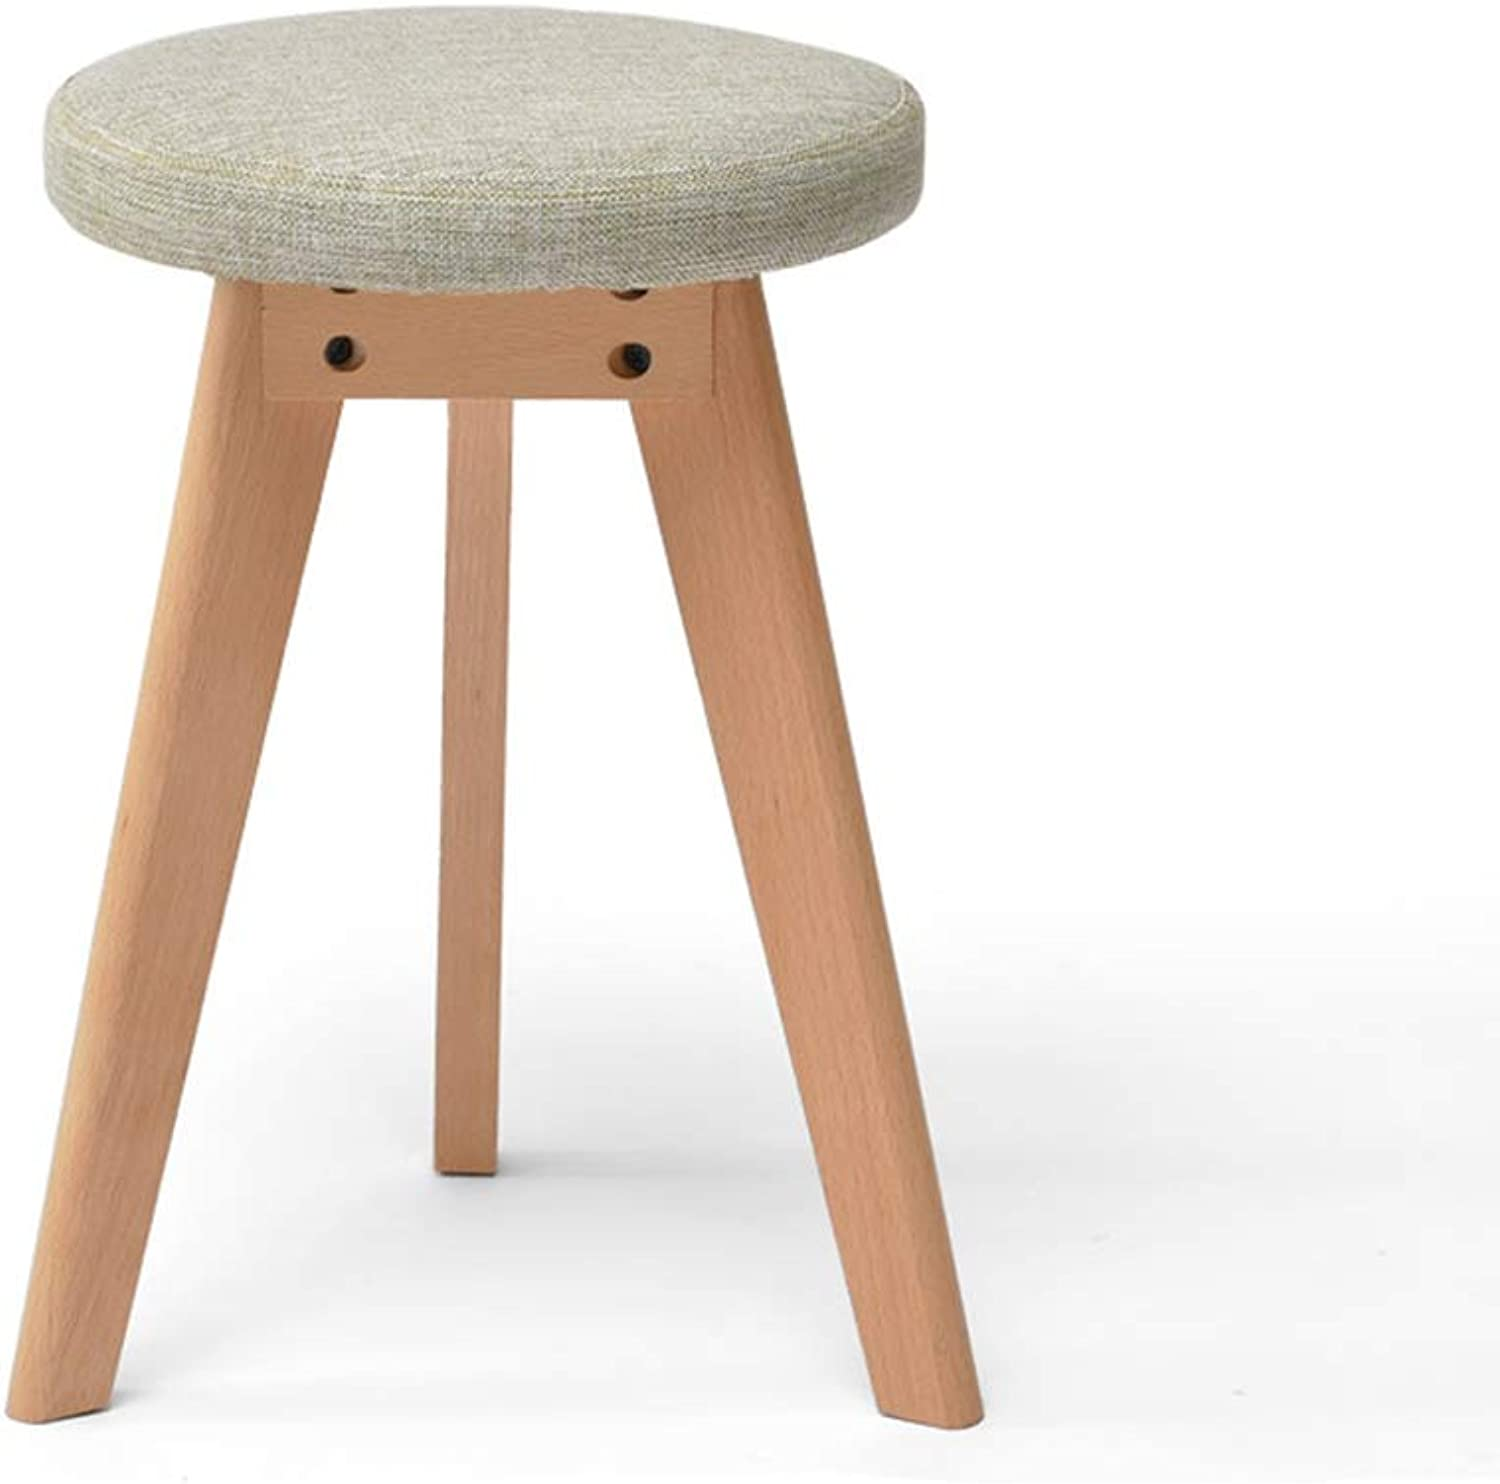 ZZHF dengzi Stool, Solid Wood Padded Dining Table Stool Dressing Stool Simple Modern Living Room 3 Legs 31  45cm (color   4, Size   31  45cm)